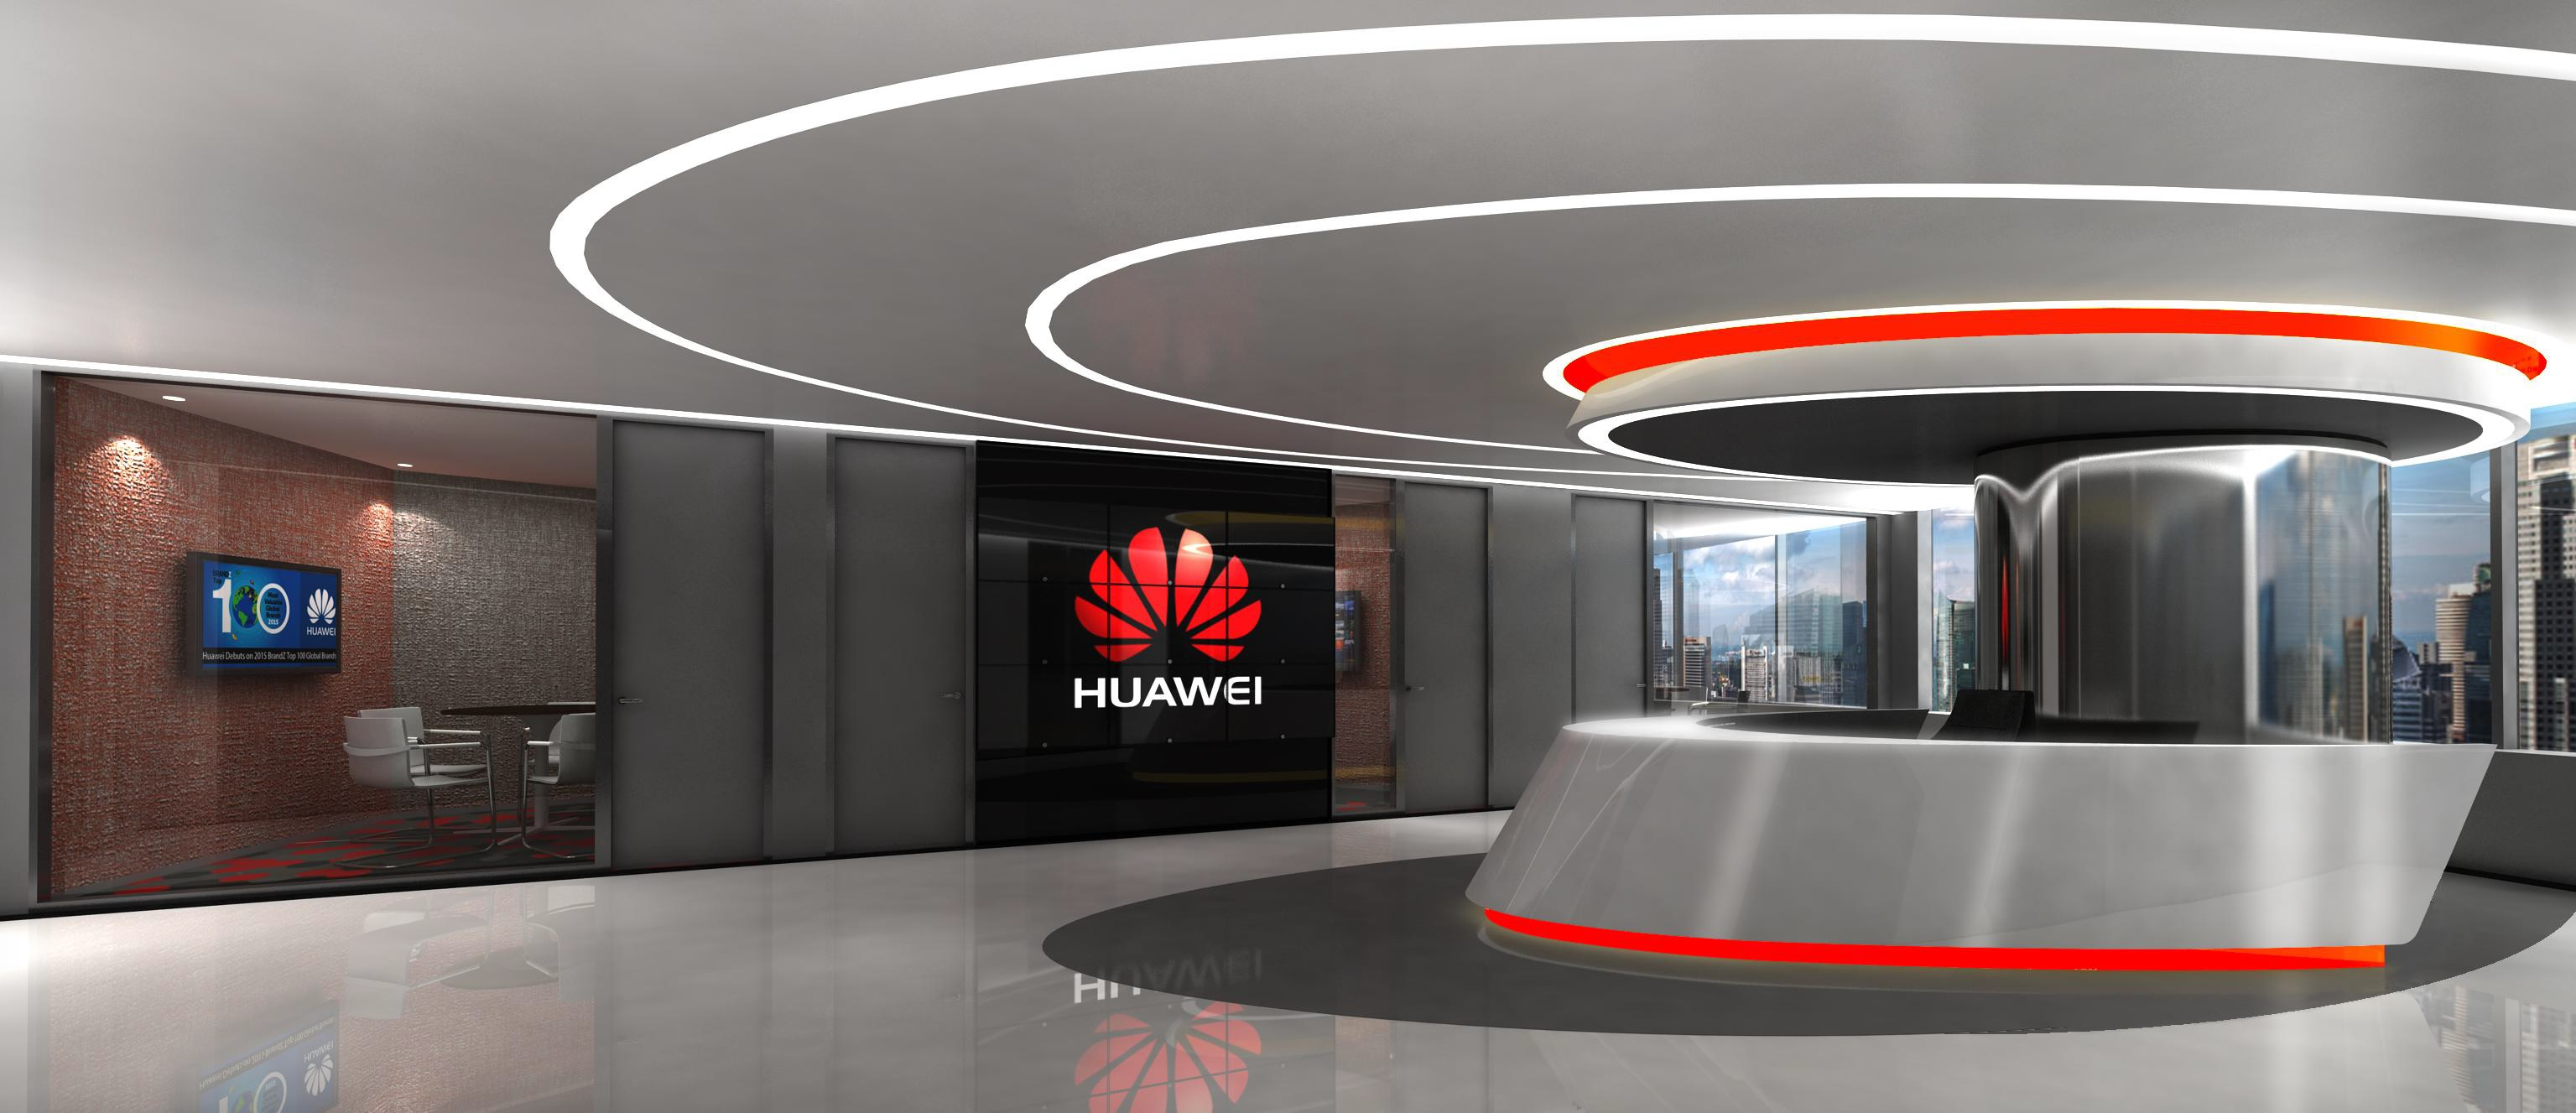 Huawei Sea Hq Meinhardt Transforming Cities Shaping